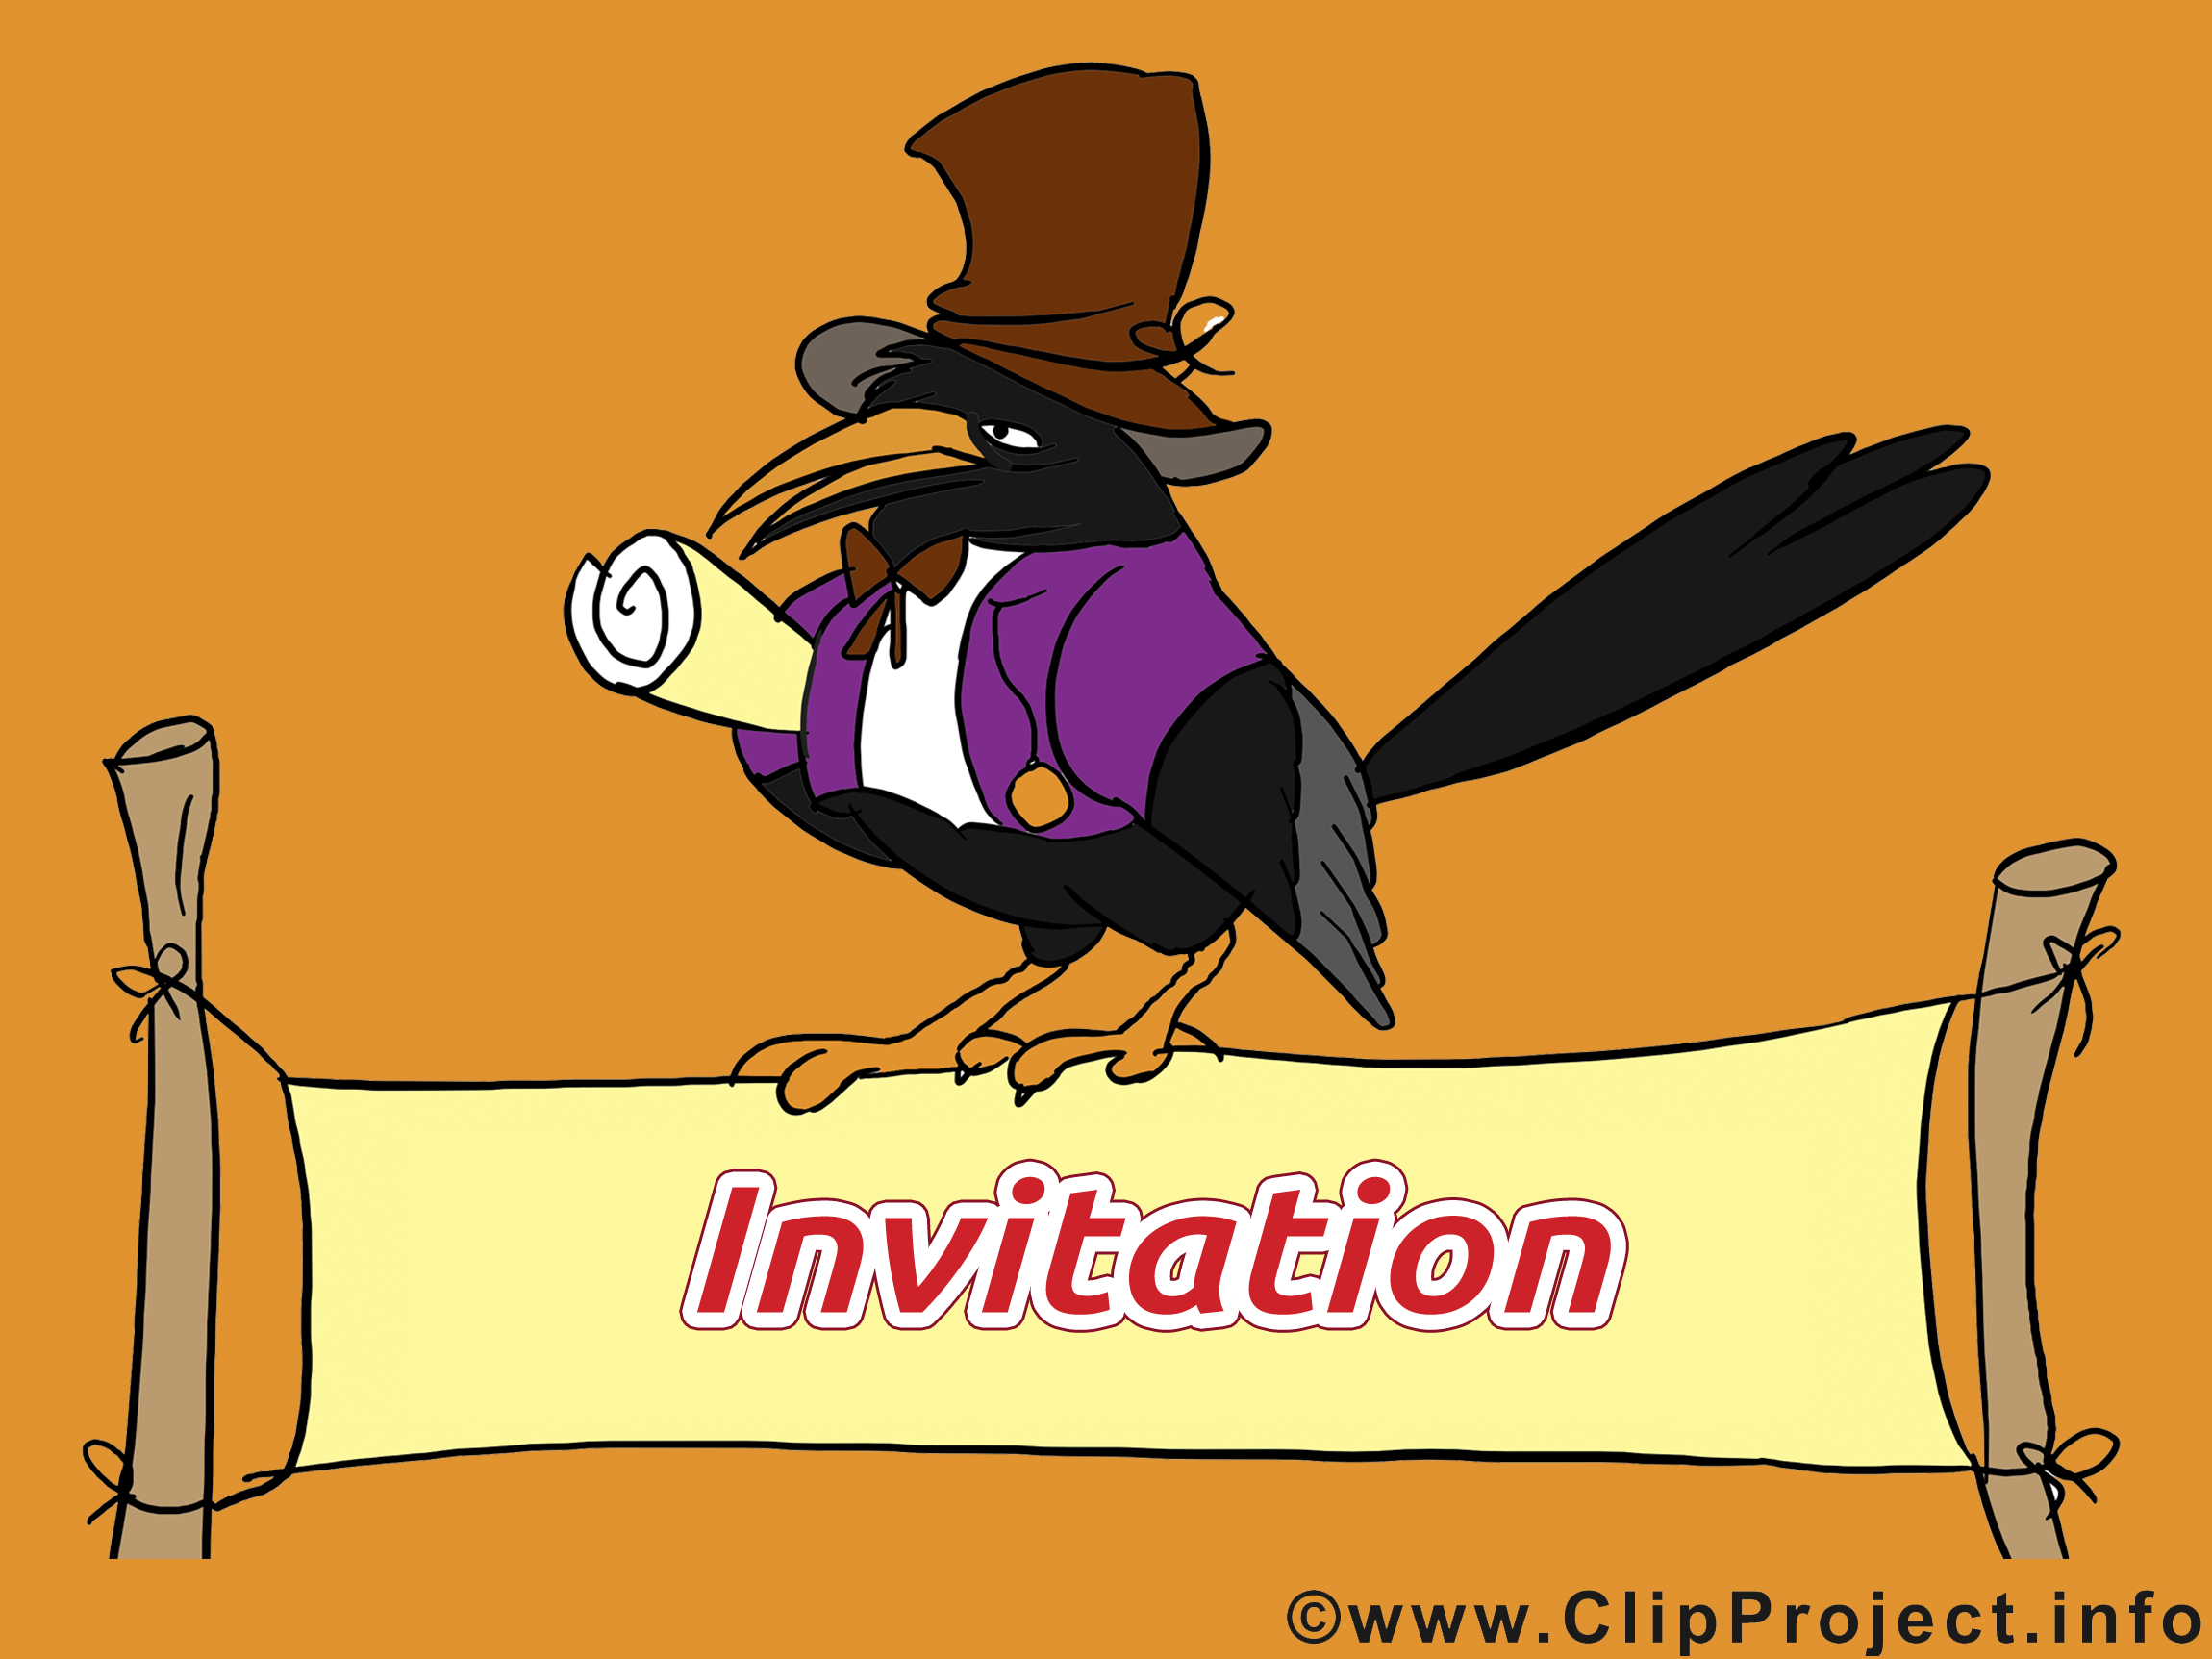 Corbeau dessins gratuits - Invitation clipart